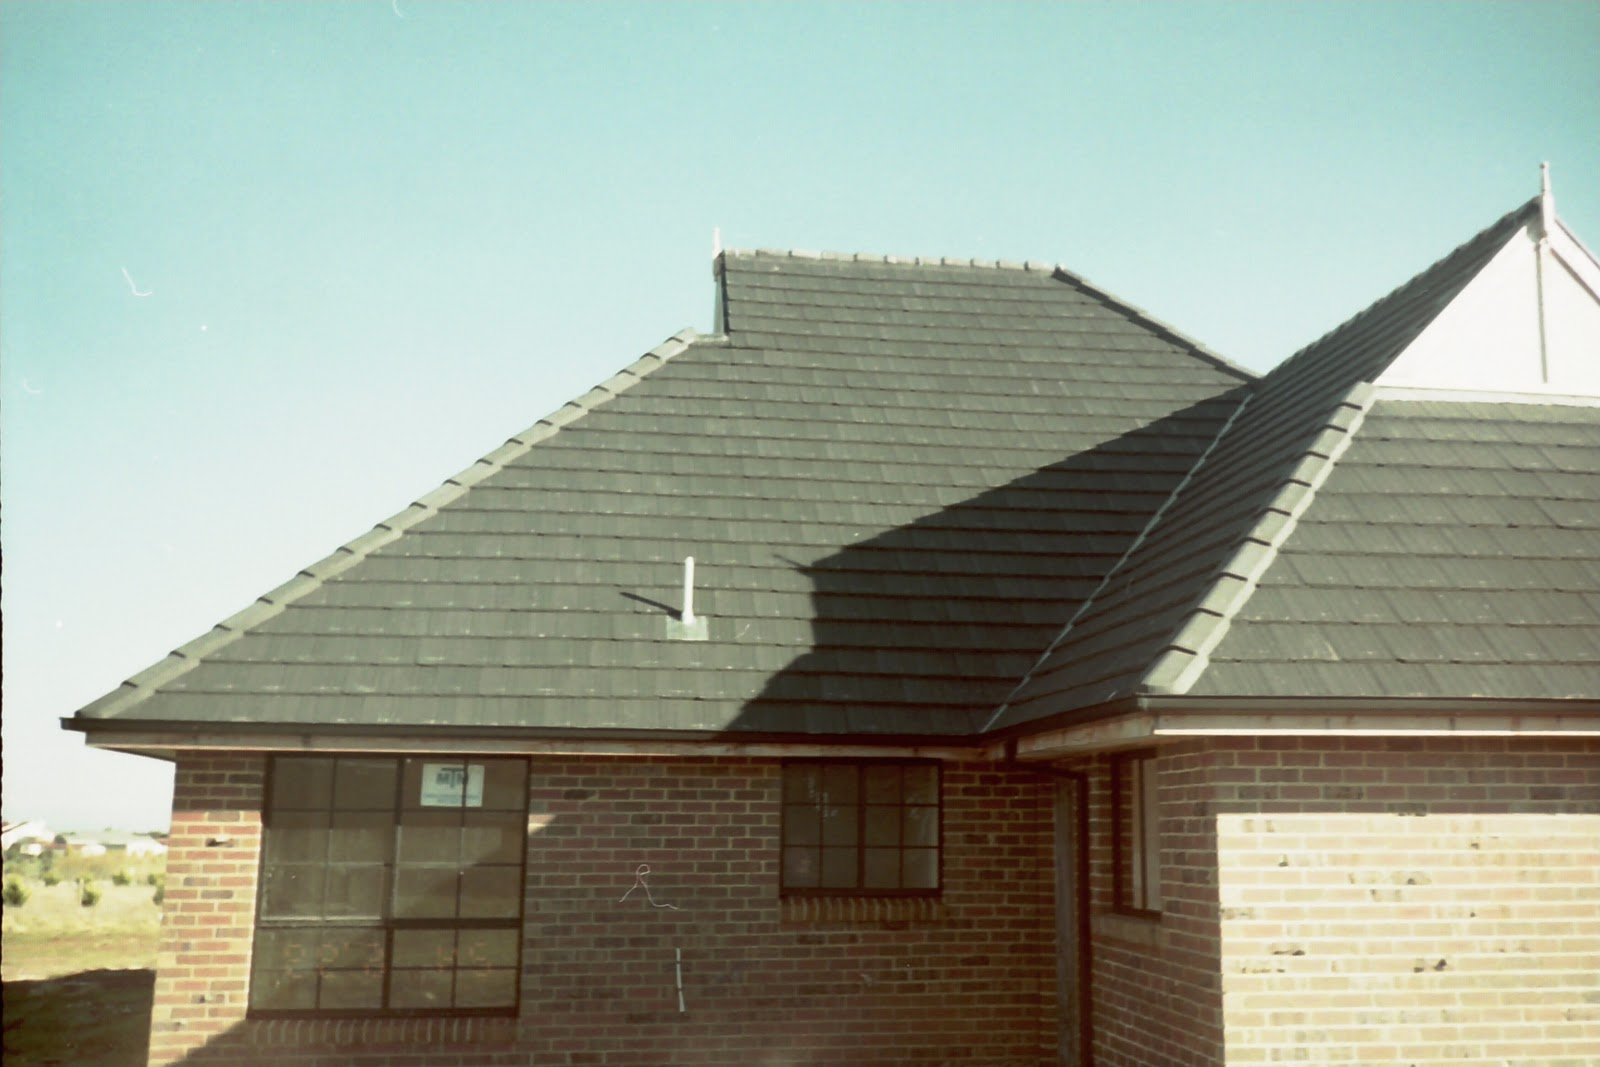 Waynes Home Renos Diy One Of The Interesting Roofing Jobs